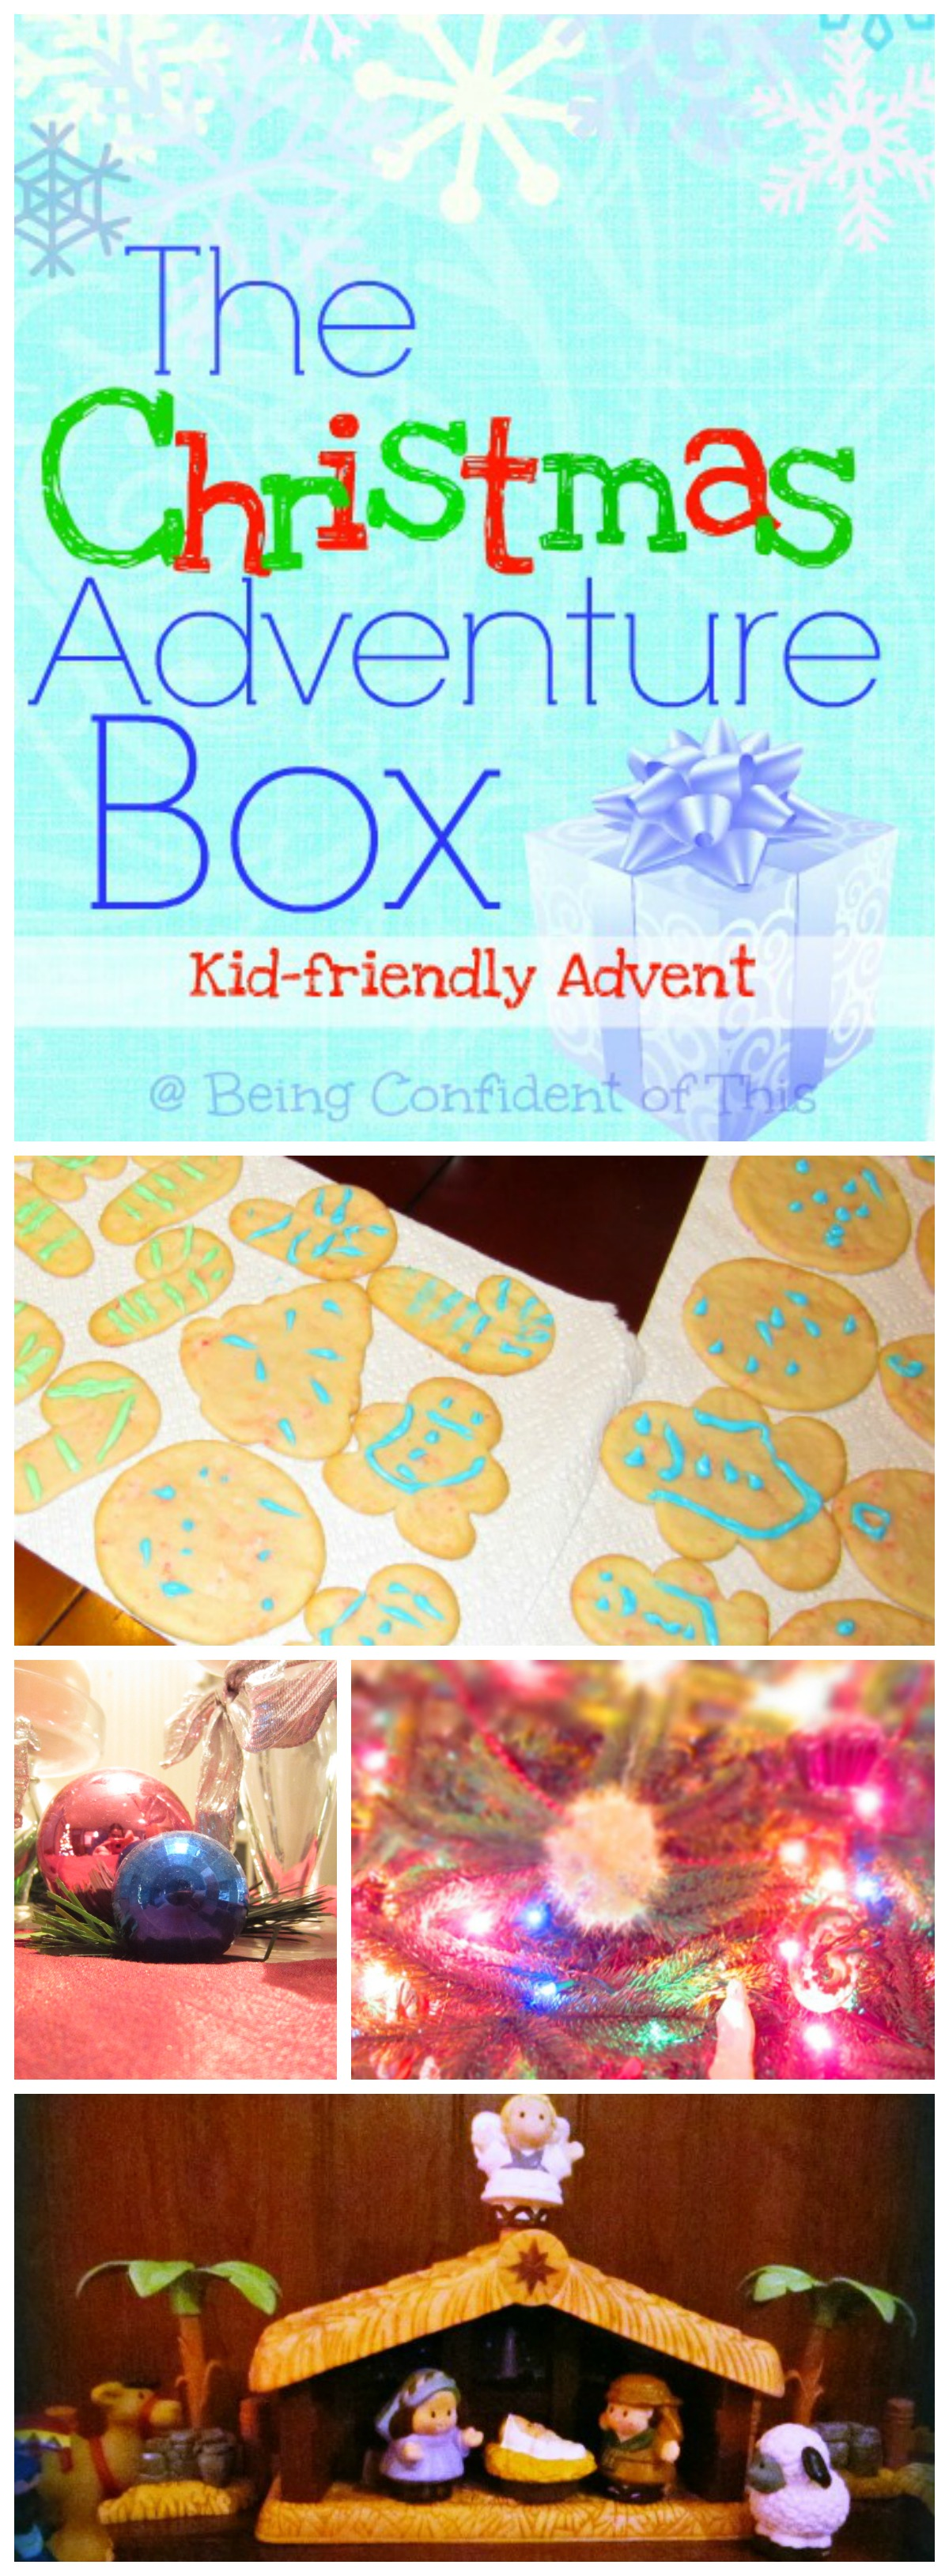 The Christmas Adventure Box is a fun, frugal, and kid-friendly activity for advent that will teach your children the true reason for celebrating the Christmas season!  Learn the spiritual significance behind some of our favorite Christmas traditions, such as Christmas trees, lights, stockings, and even candy canes!